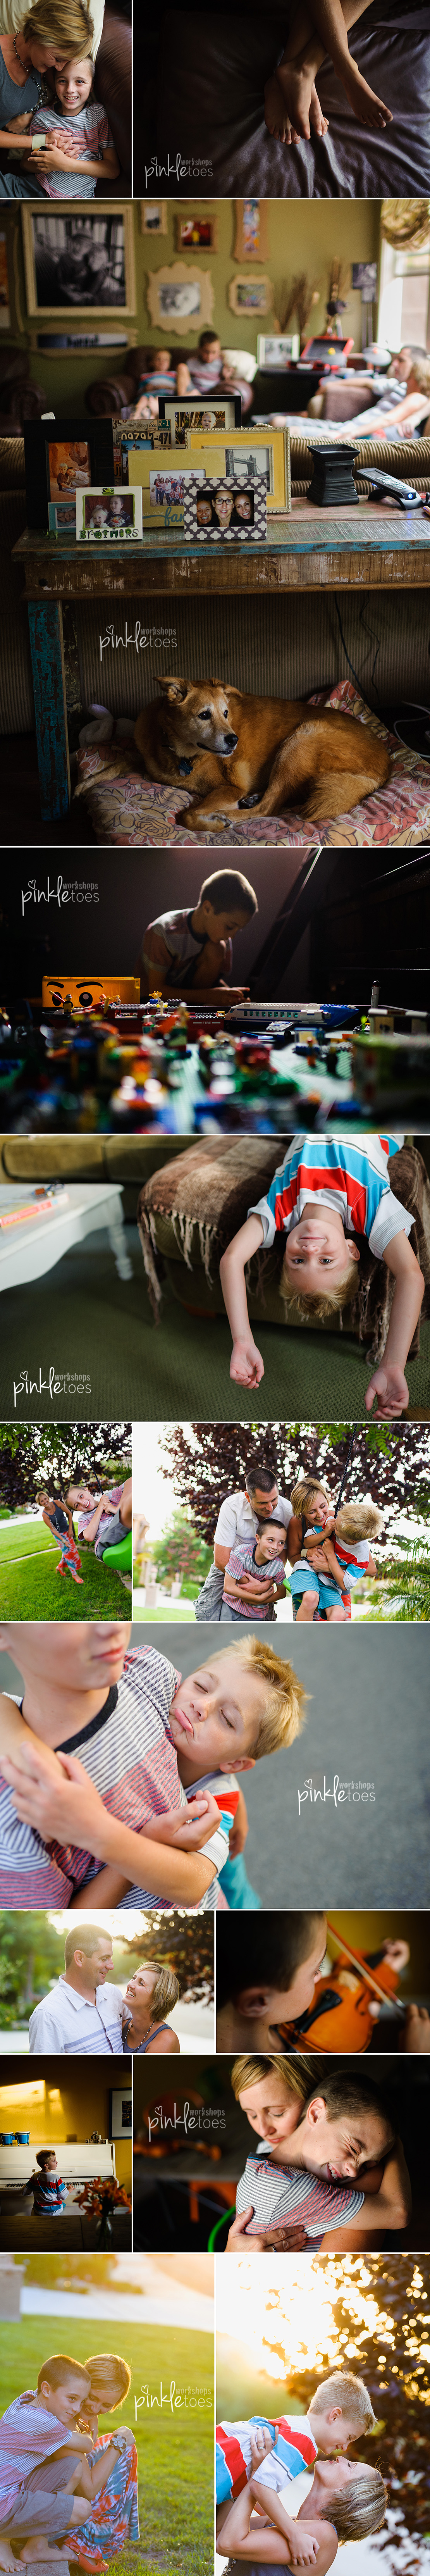 cardiff-pinkle-toes-lifestyle-family-photography-workshop-california-austin-texas-perth-sydney-australia